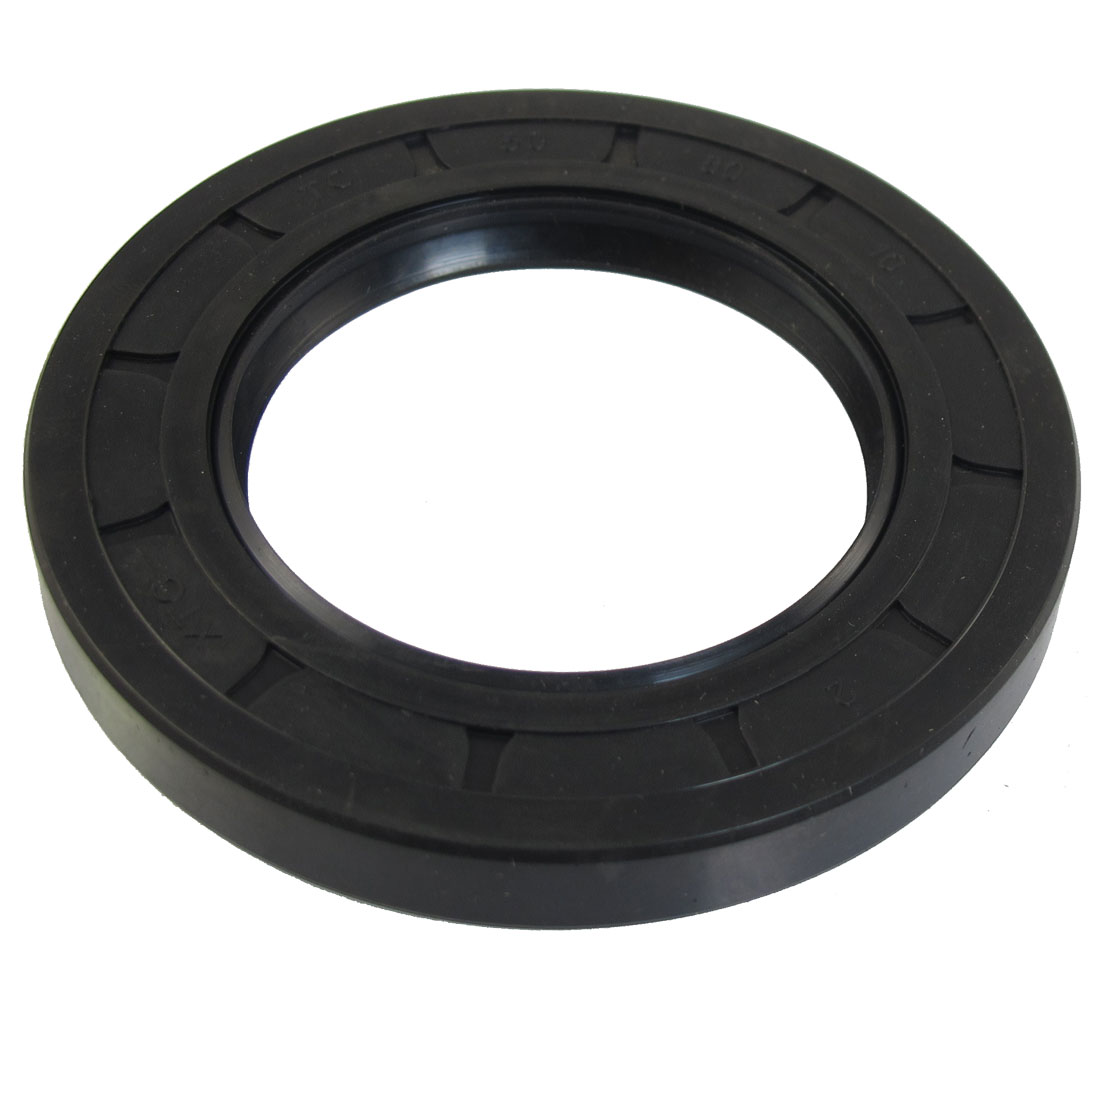 Black Nitrile Rubber Dual Lips Oil Shaft Seal TC 50mm x 80mm x 10mm